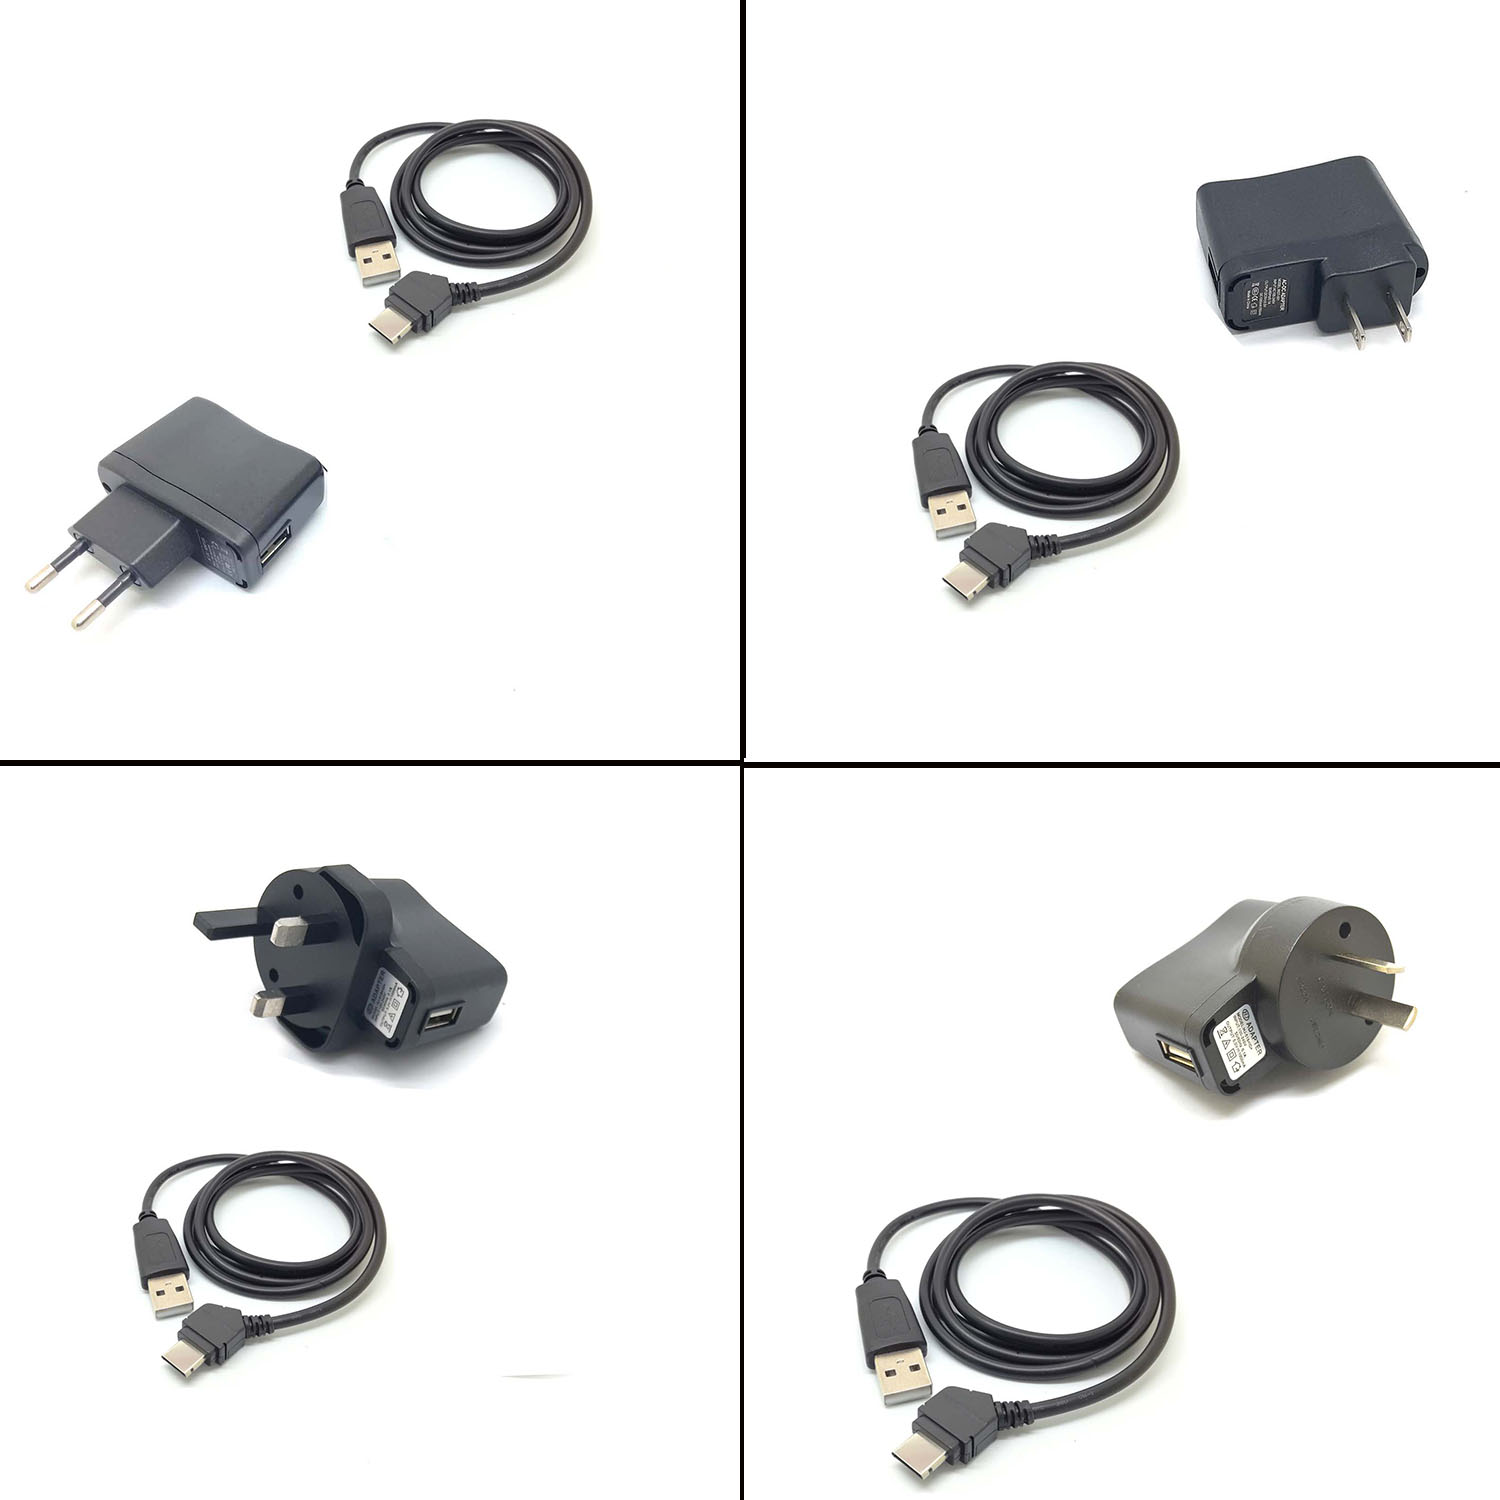 USB data CABLE wall CHARGER for <font><b>SAMSUNG</b></font> SGH-A707 A717 D807 / D806 D830 D840 D900 Black Carbon <font><b>E250</b></font> E900 F300 i607 BlackJack image